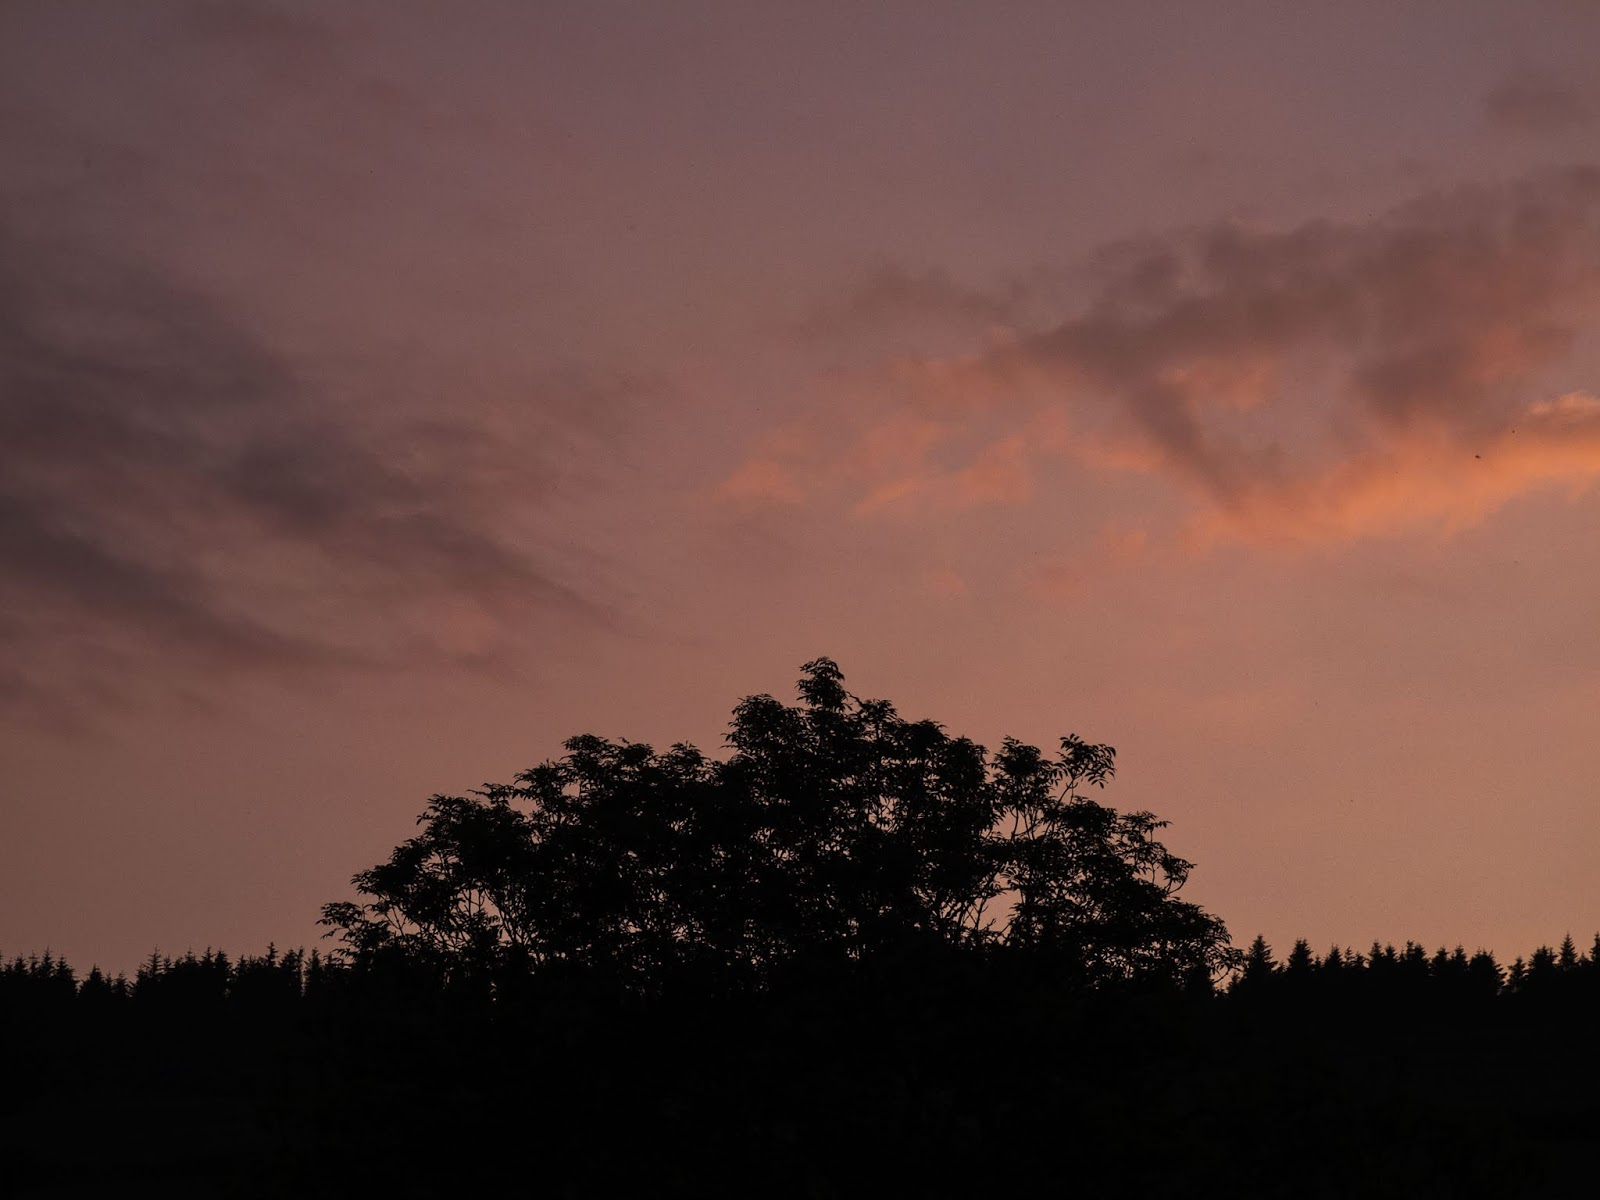 An Ash tree towering over a conifer forest at sunset.